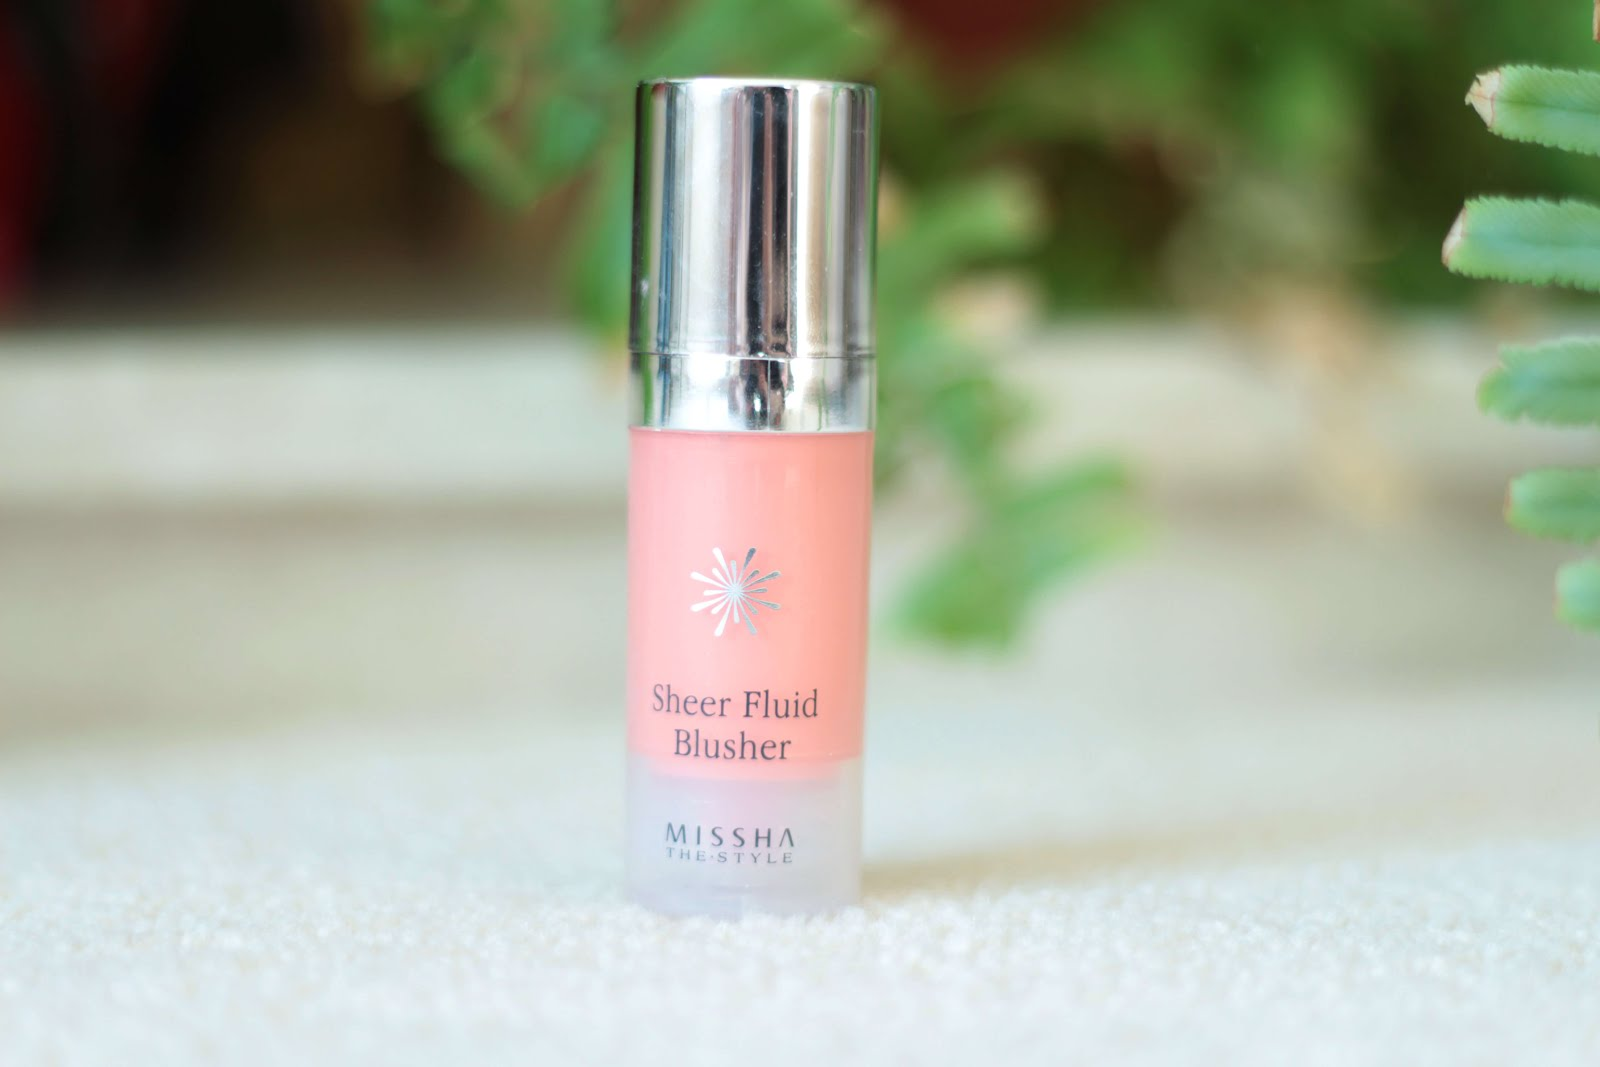 review missha sheer fluid blusher vivid coral uk beauty blogger